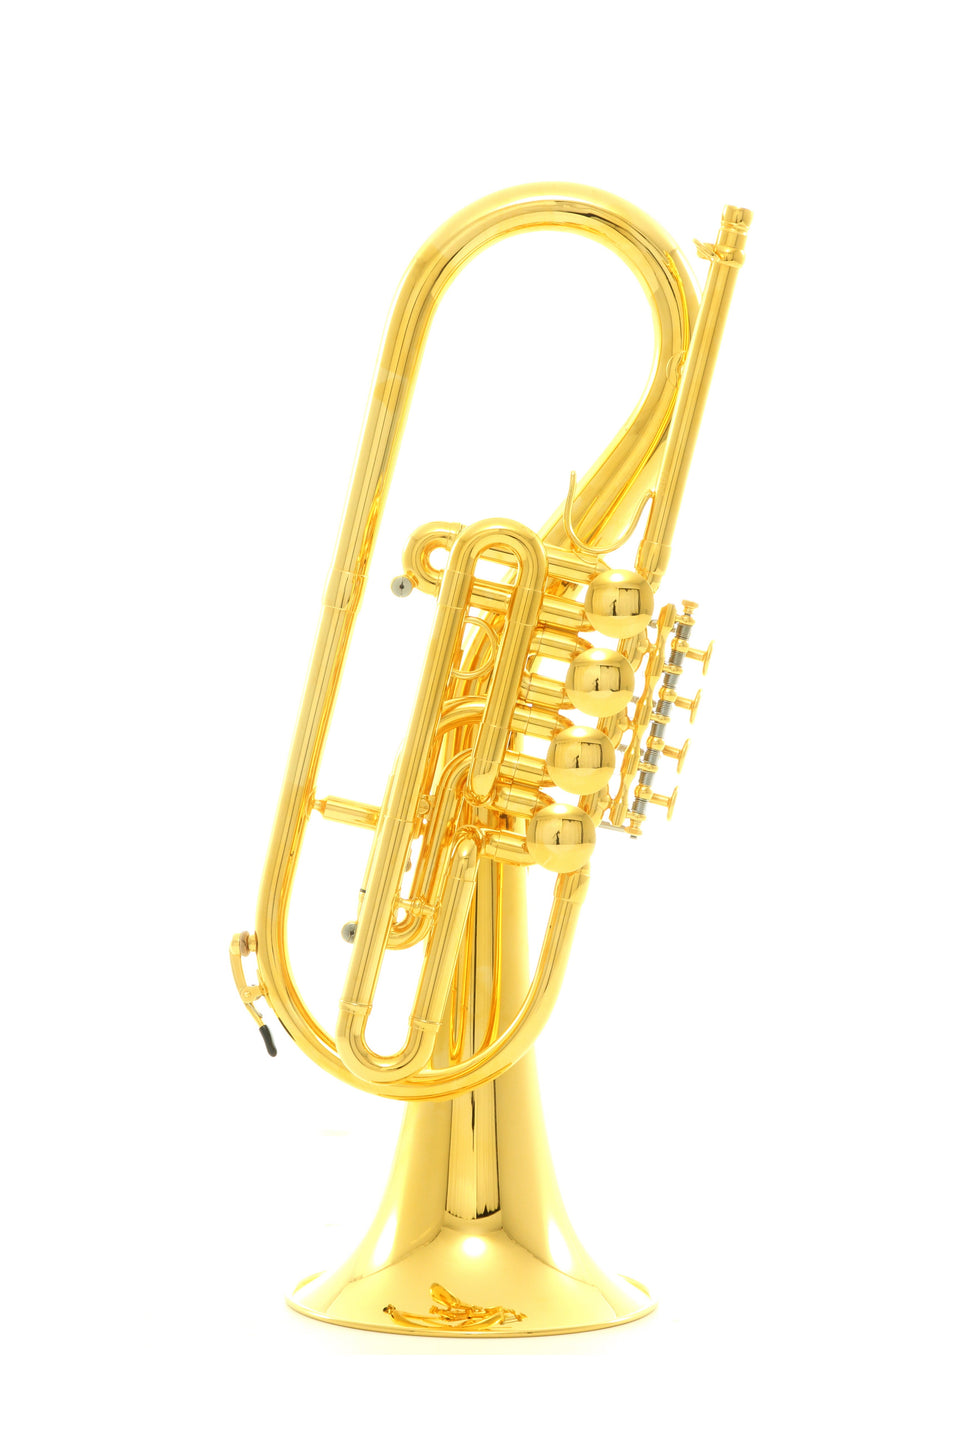 Schagerl Killer Queen Gold Plated Flugelhorn